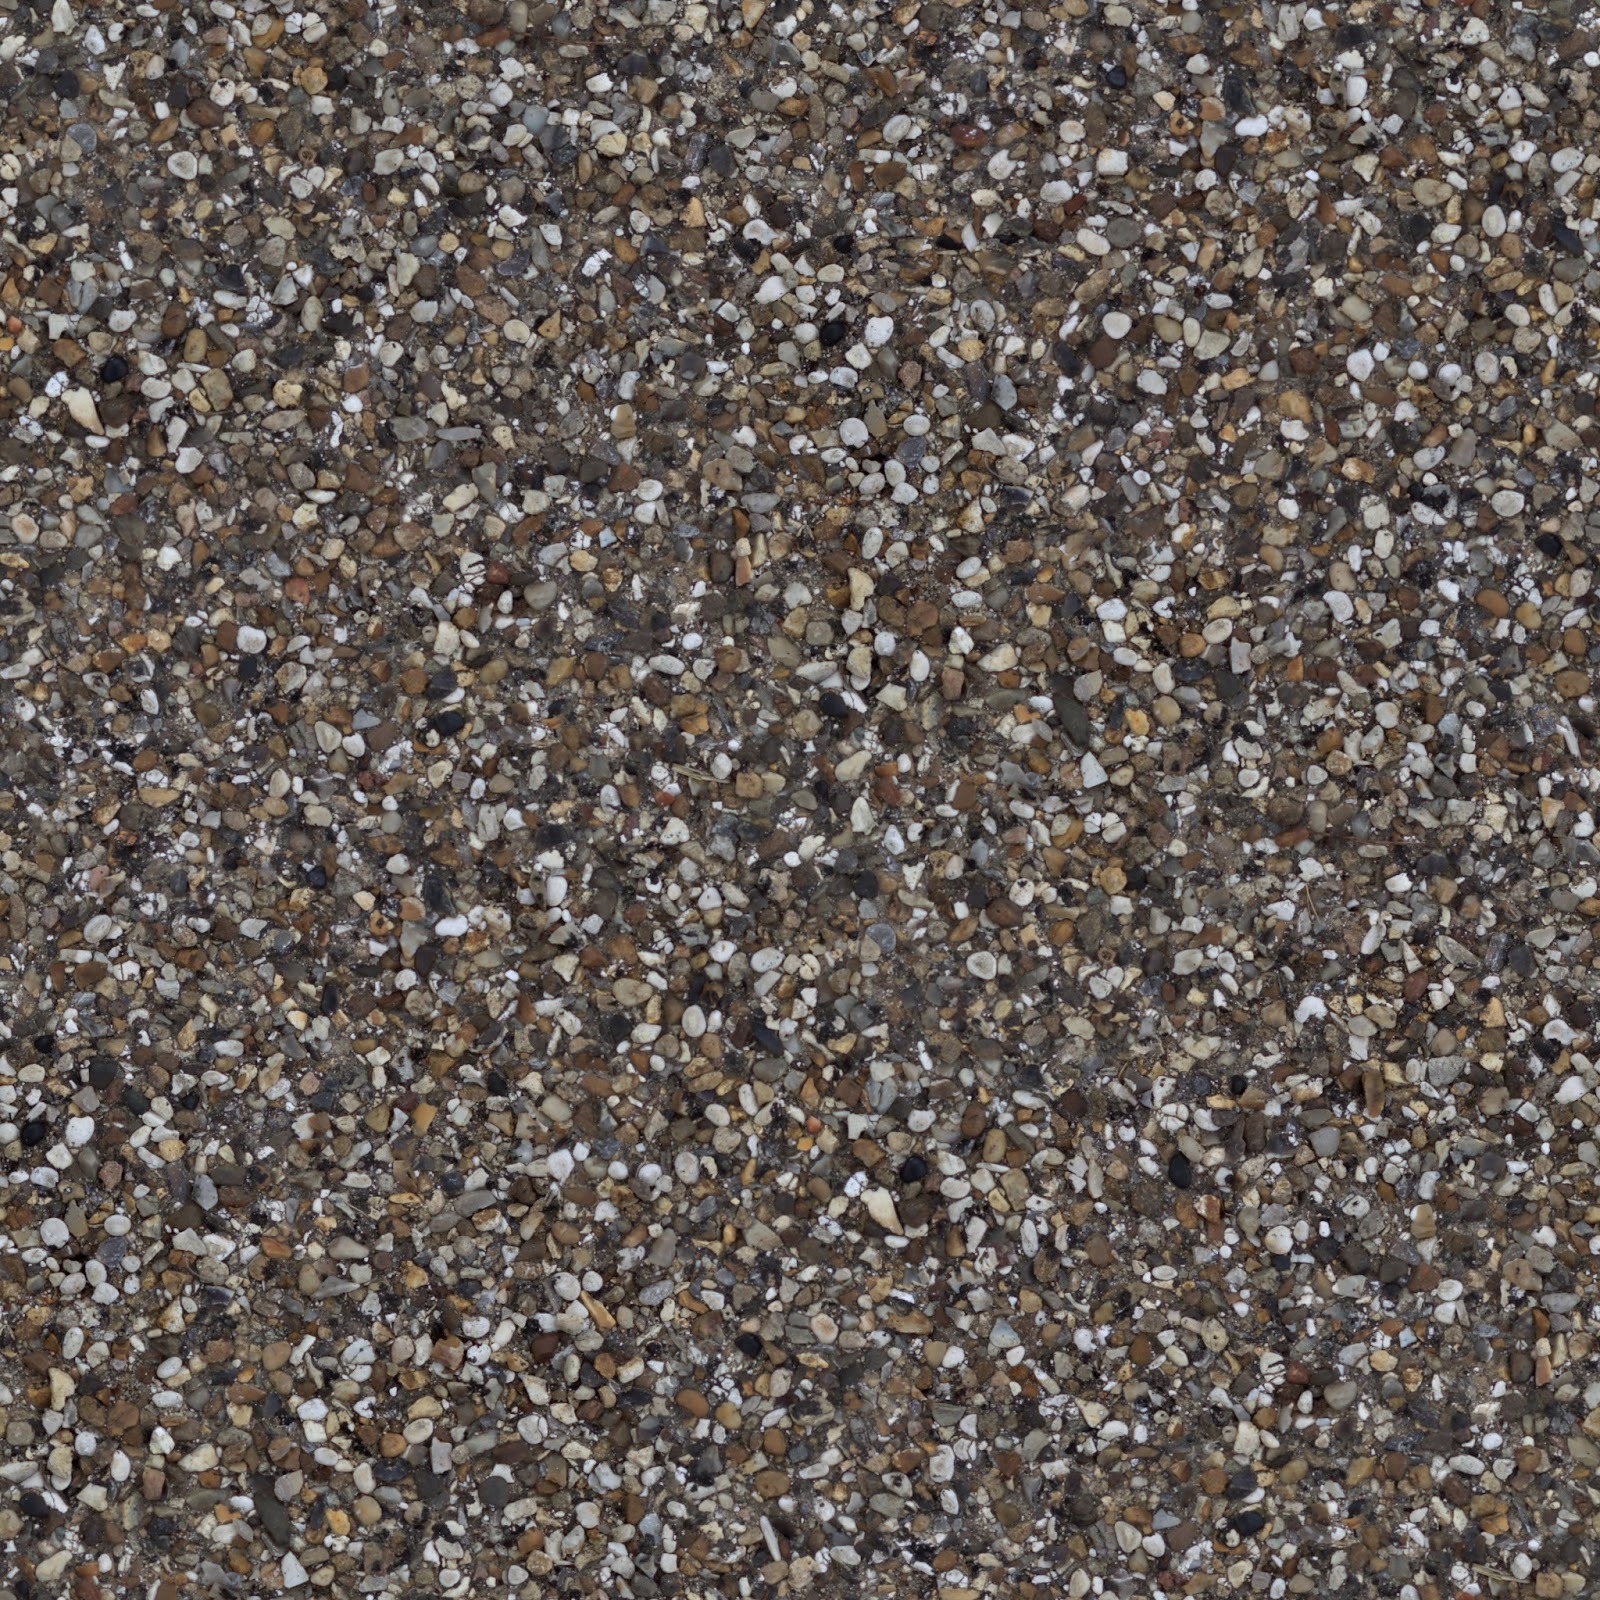 Pebblestone cobble ground gravel floor walkway seamless texture 2048x2048